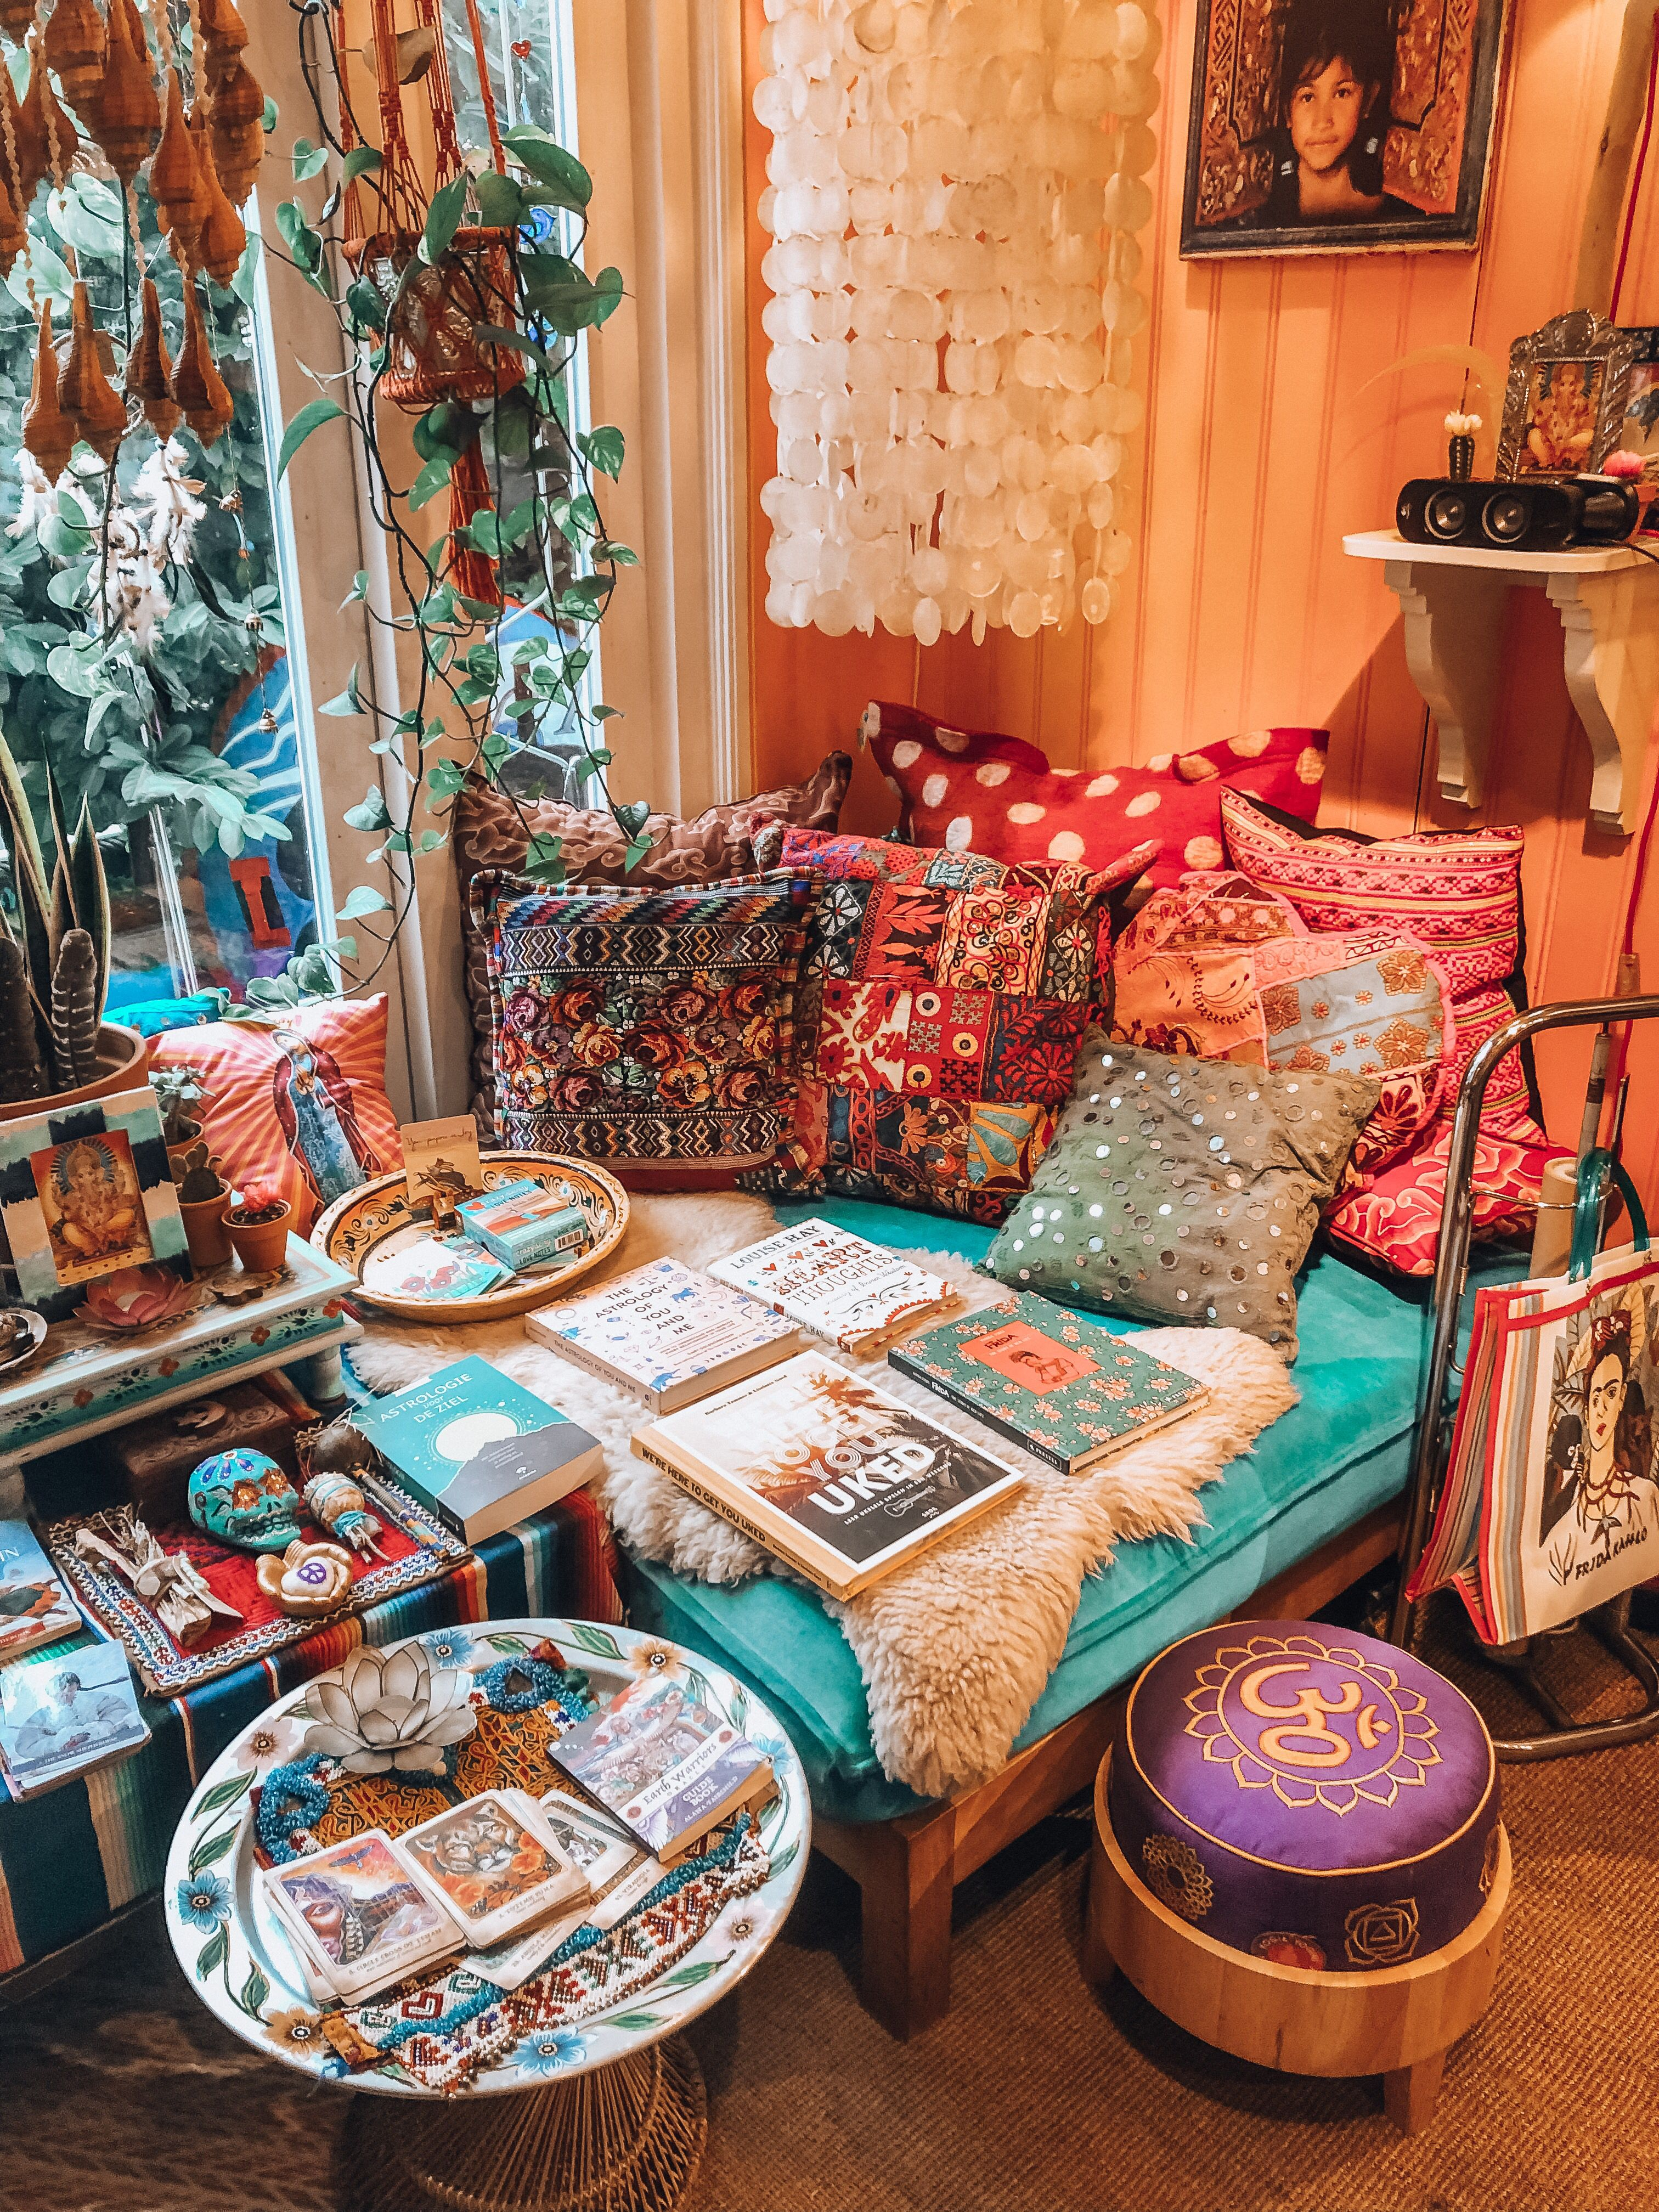 The happiest place in Amsterdam! Bohemian style home decor shop